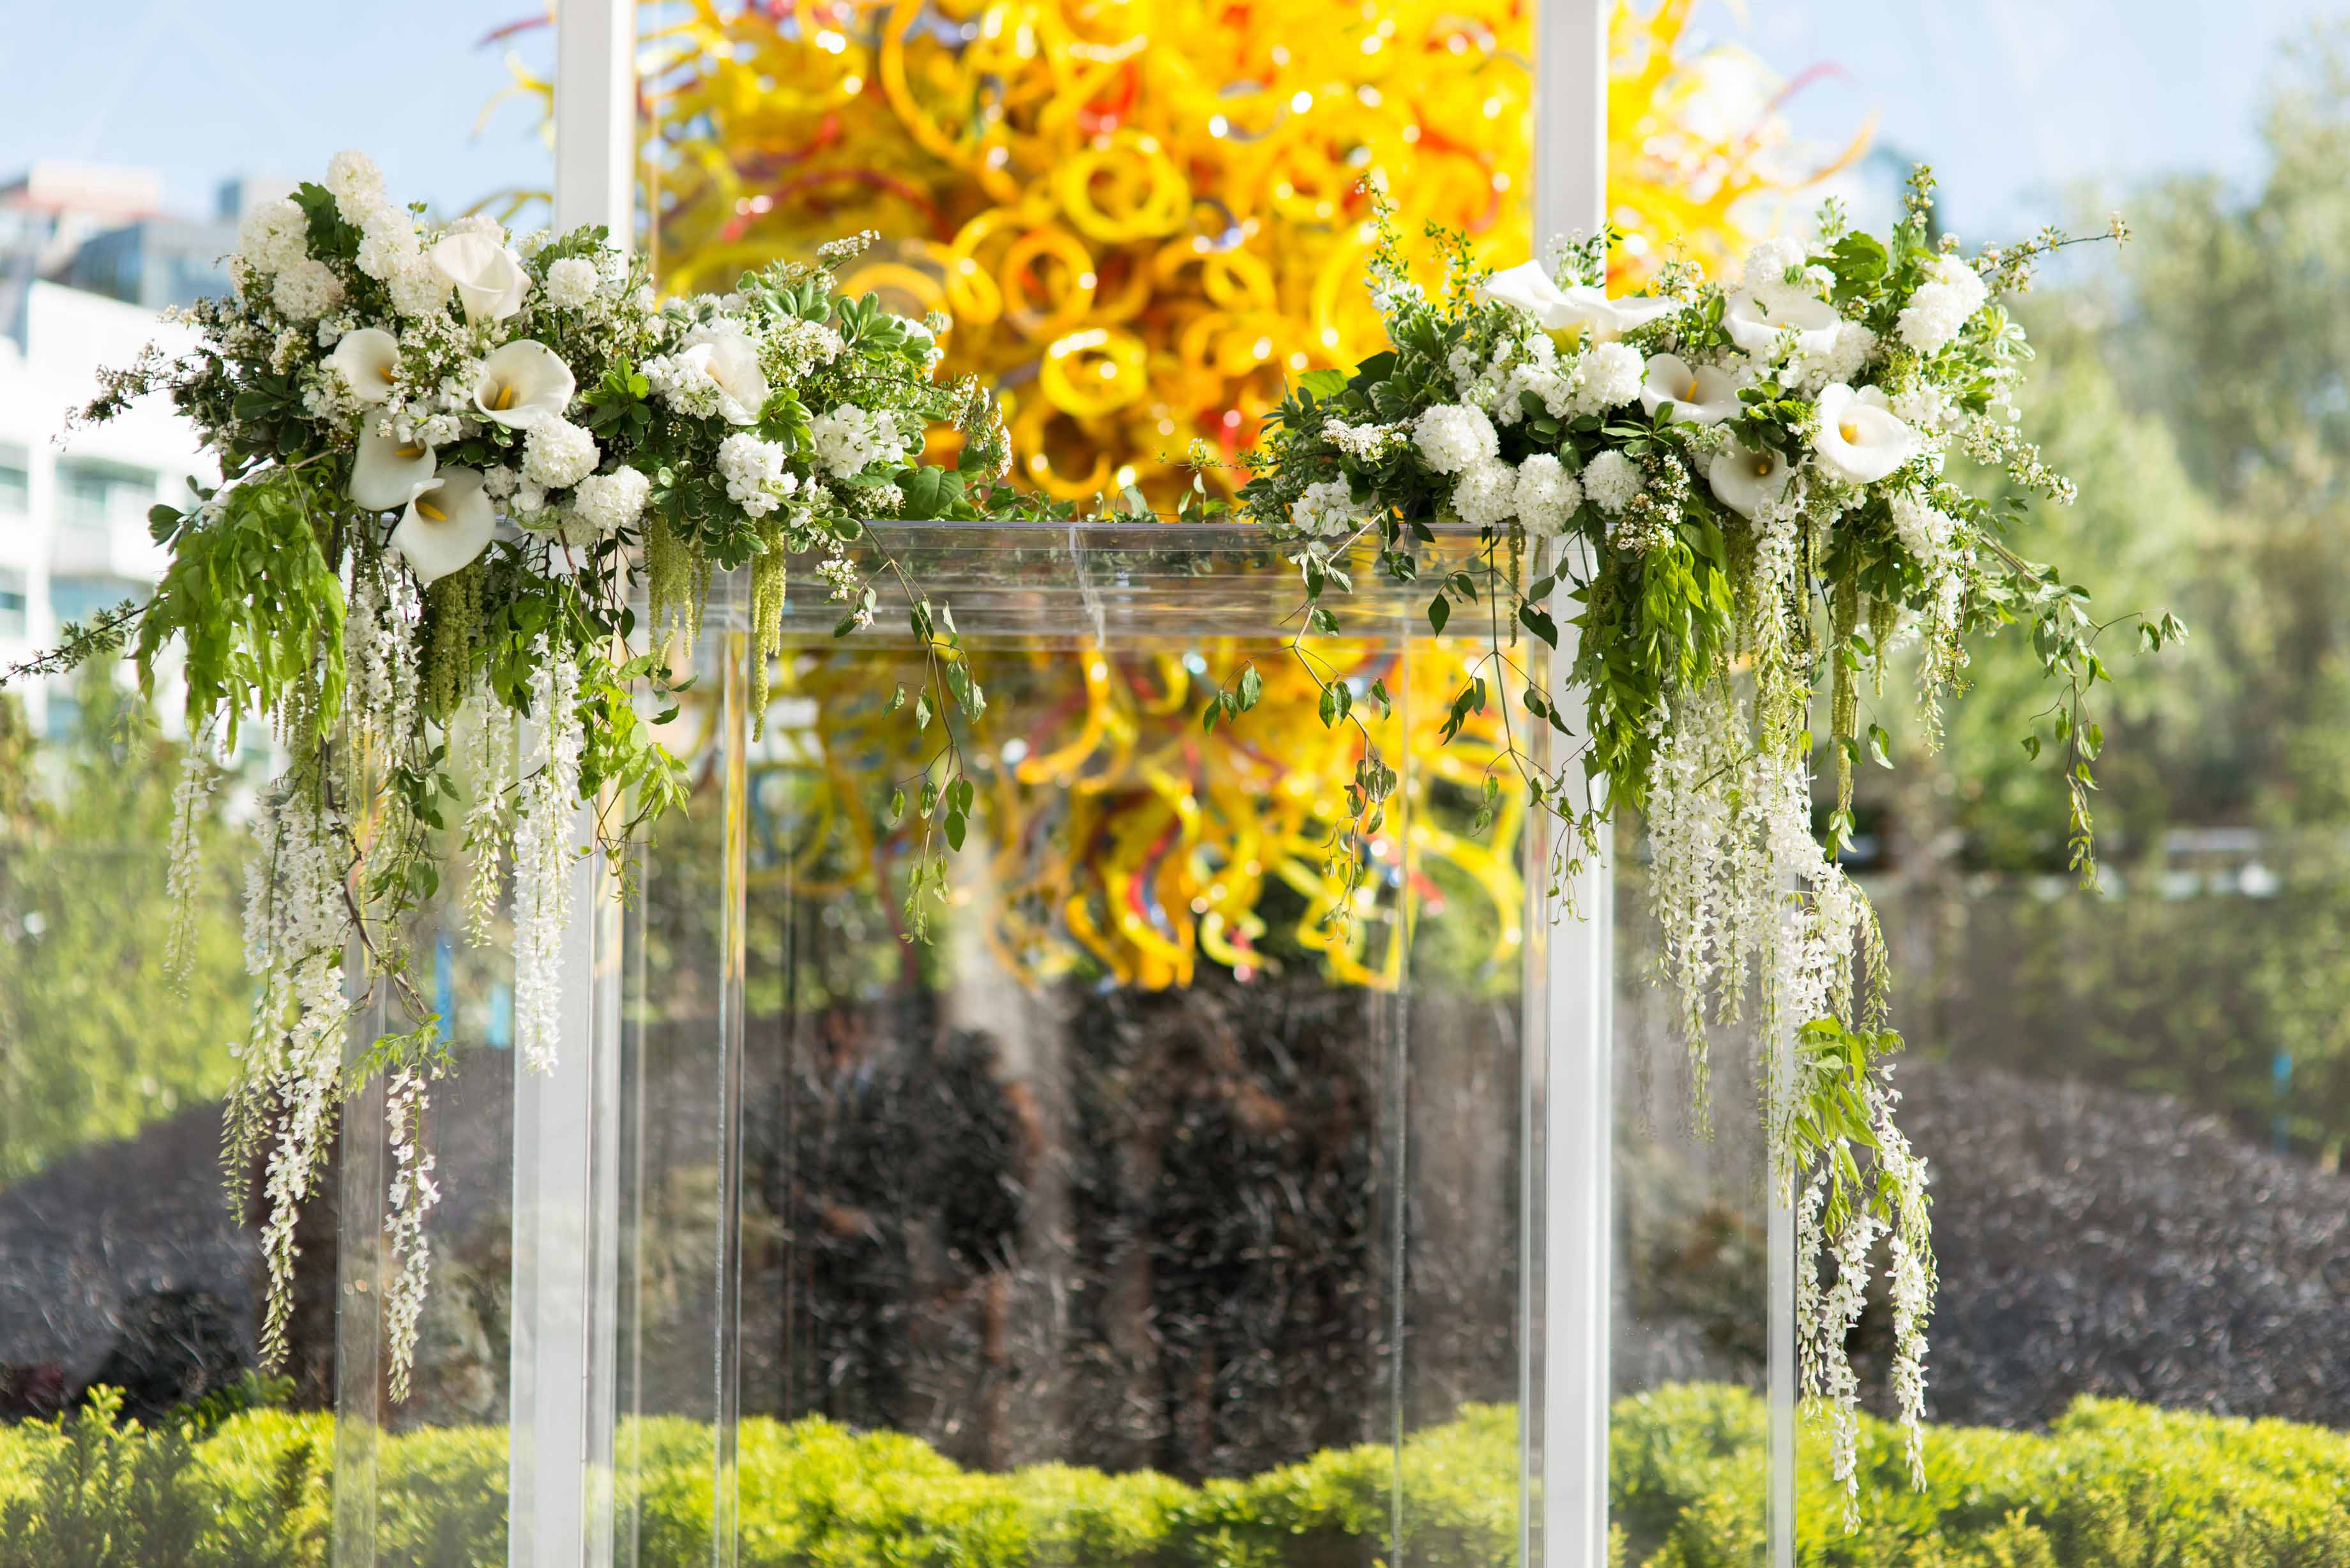 Clear lucite wedding chuppah covered in greenery and white spring flowers with large Chihuly glass sun in background